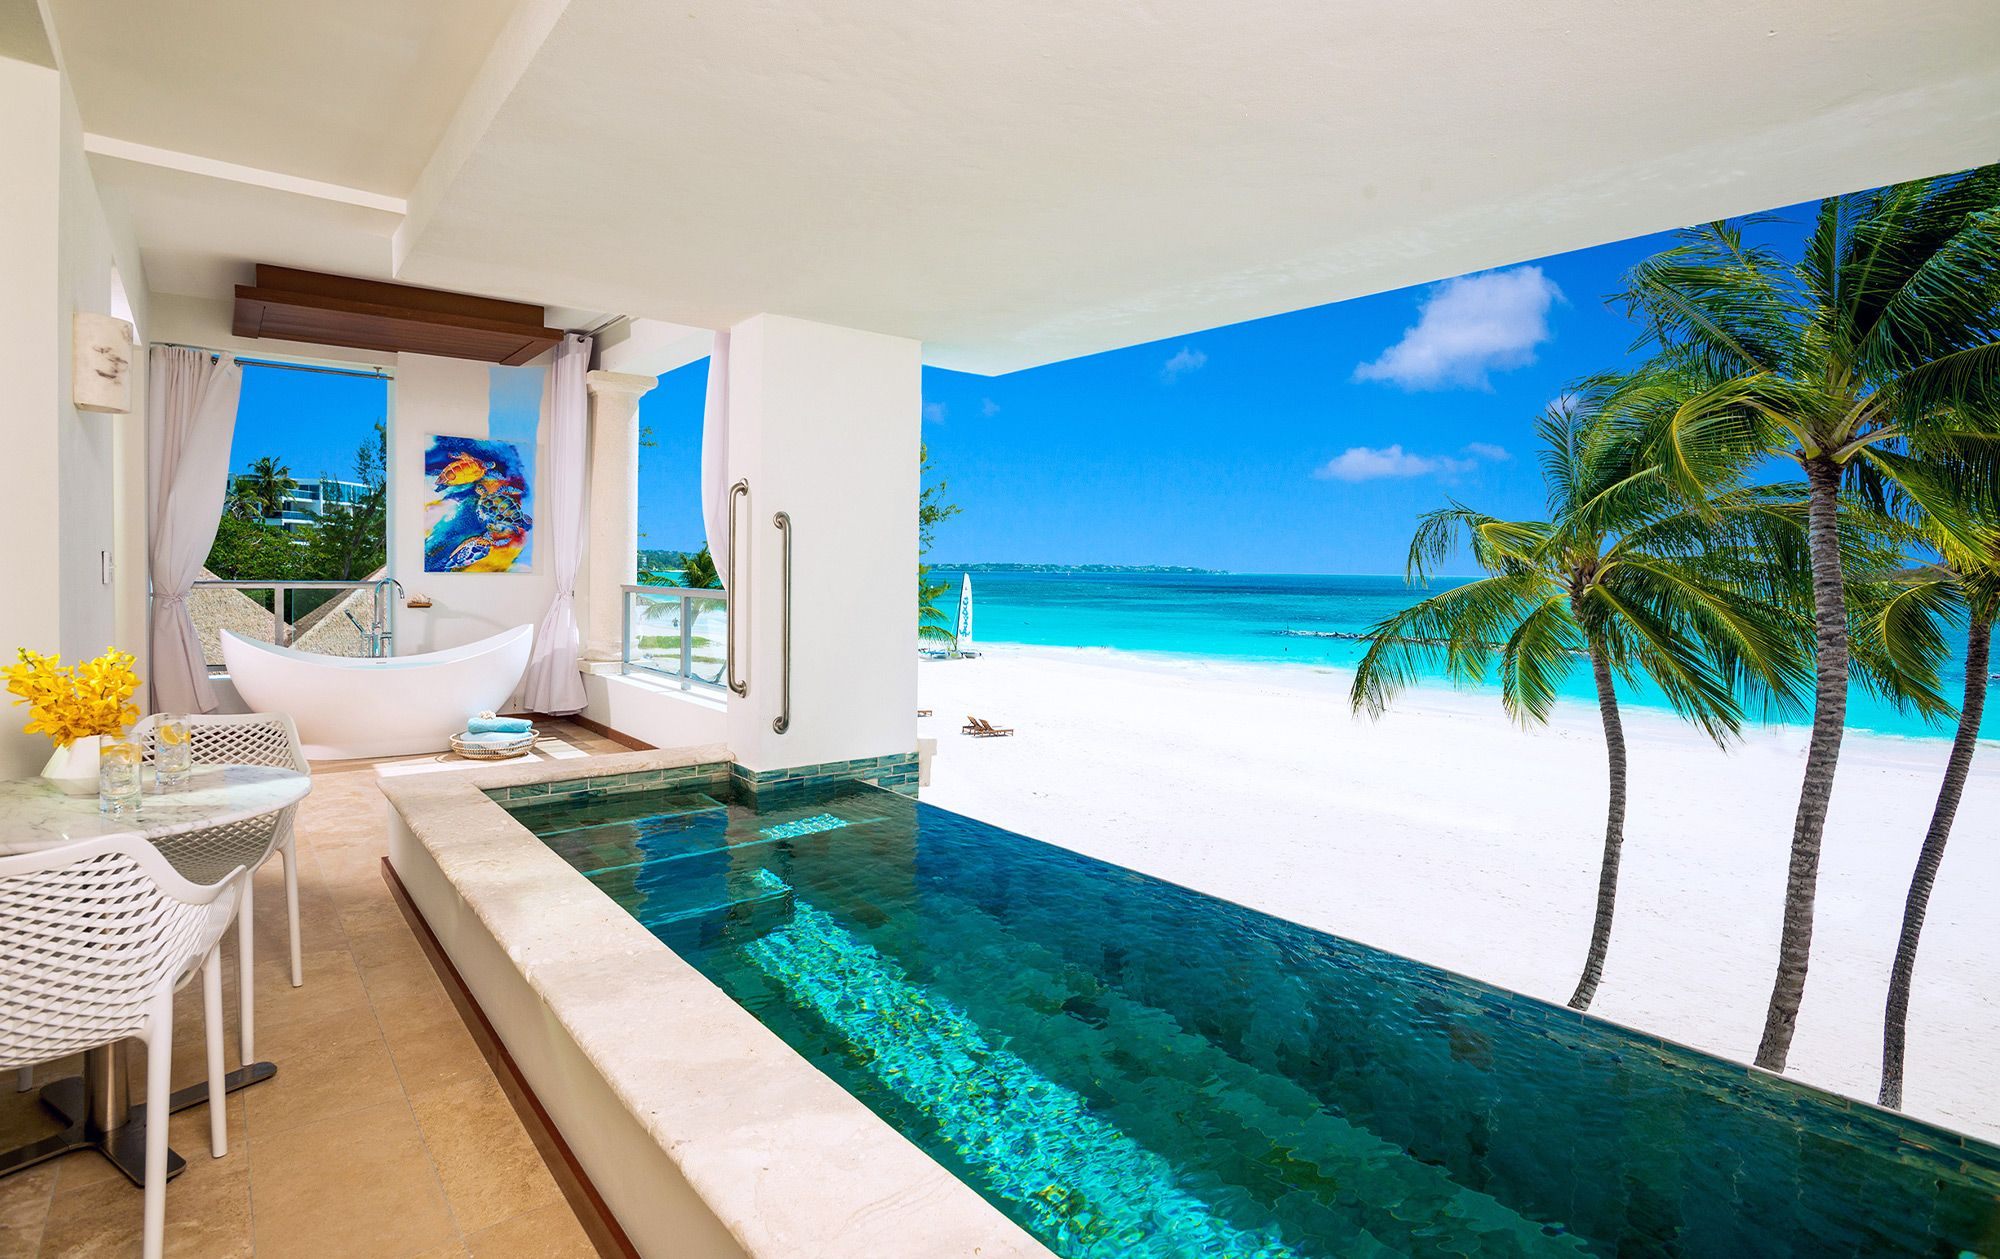 8 Best Areas To Stay In Barbados